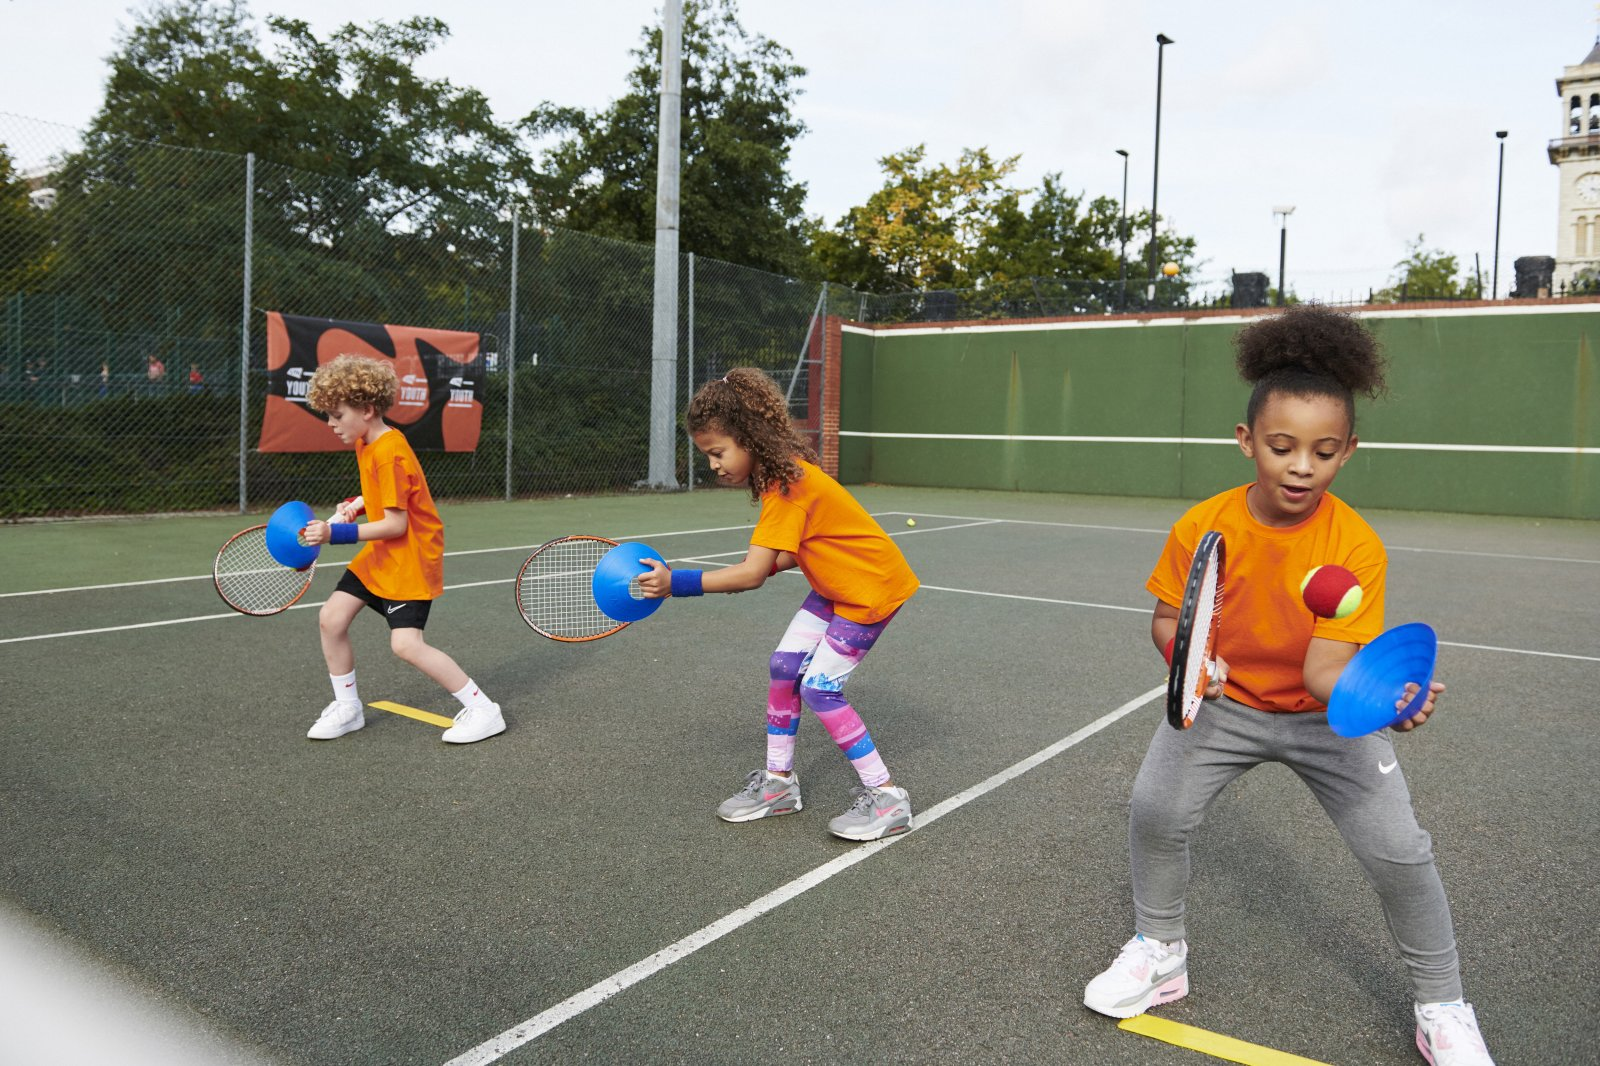 LTA Youth: Instilling confidence on and off the court with launch of new junior programme for tennis